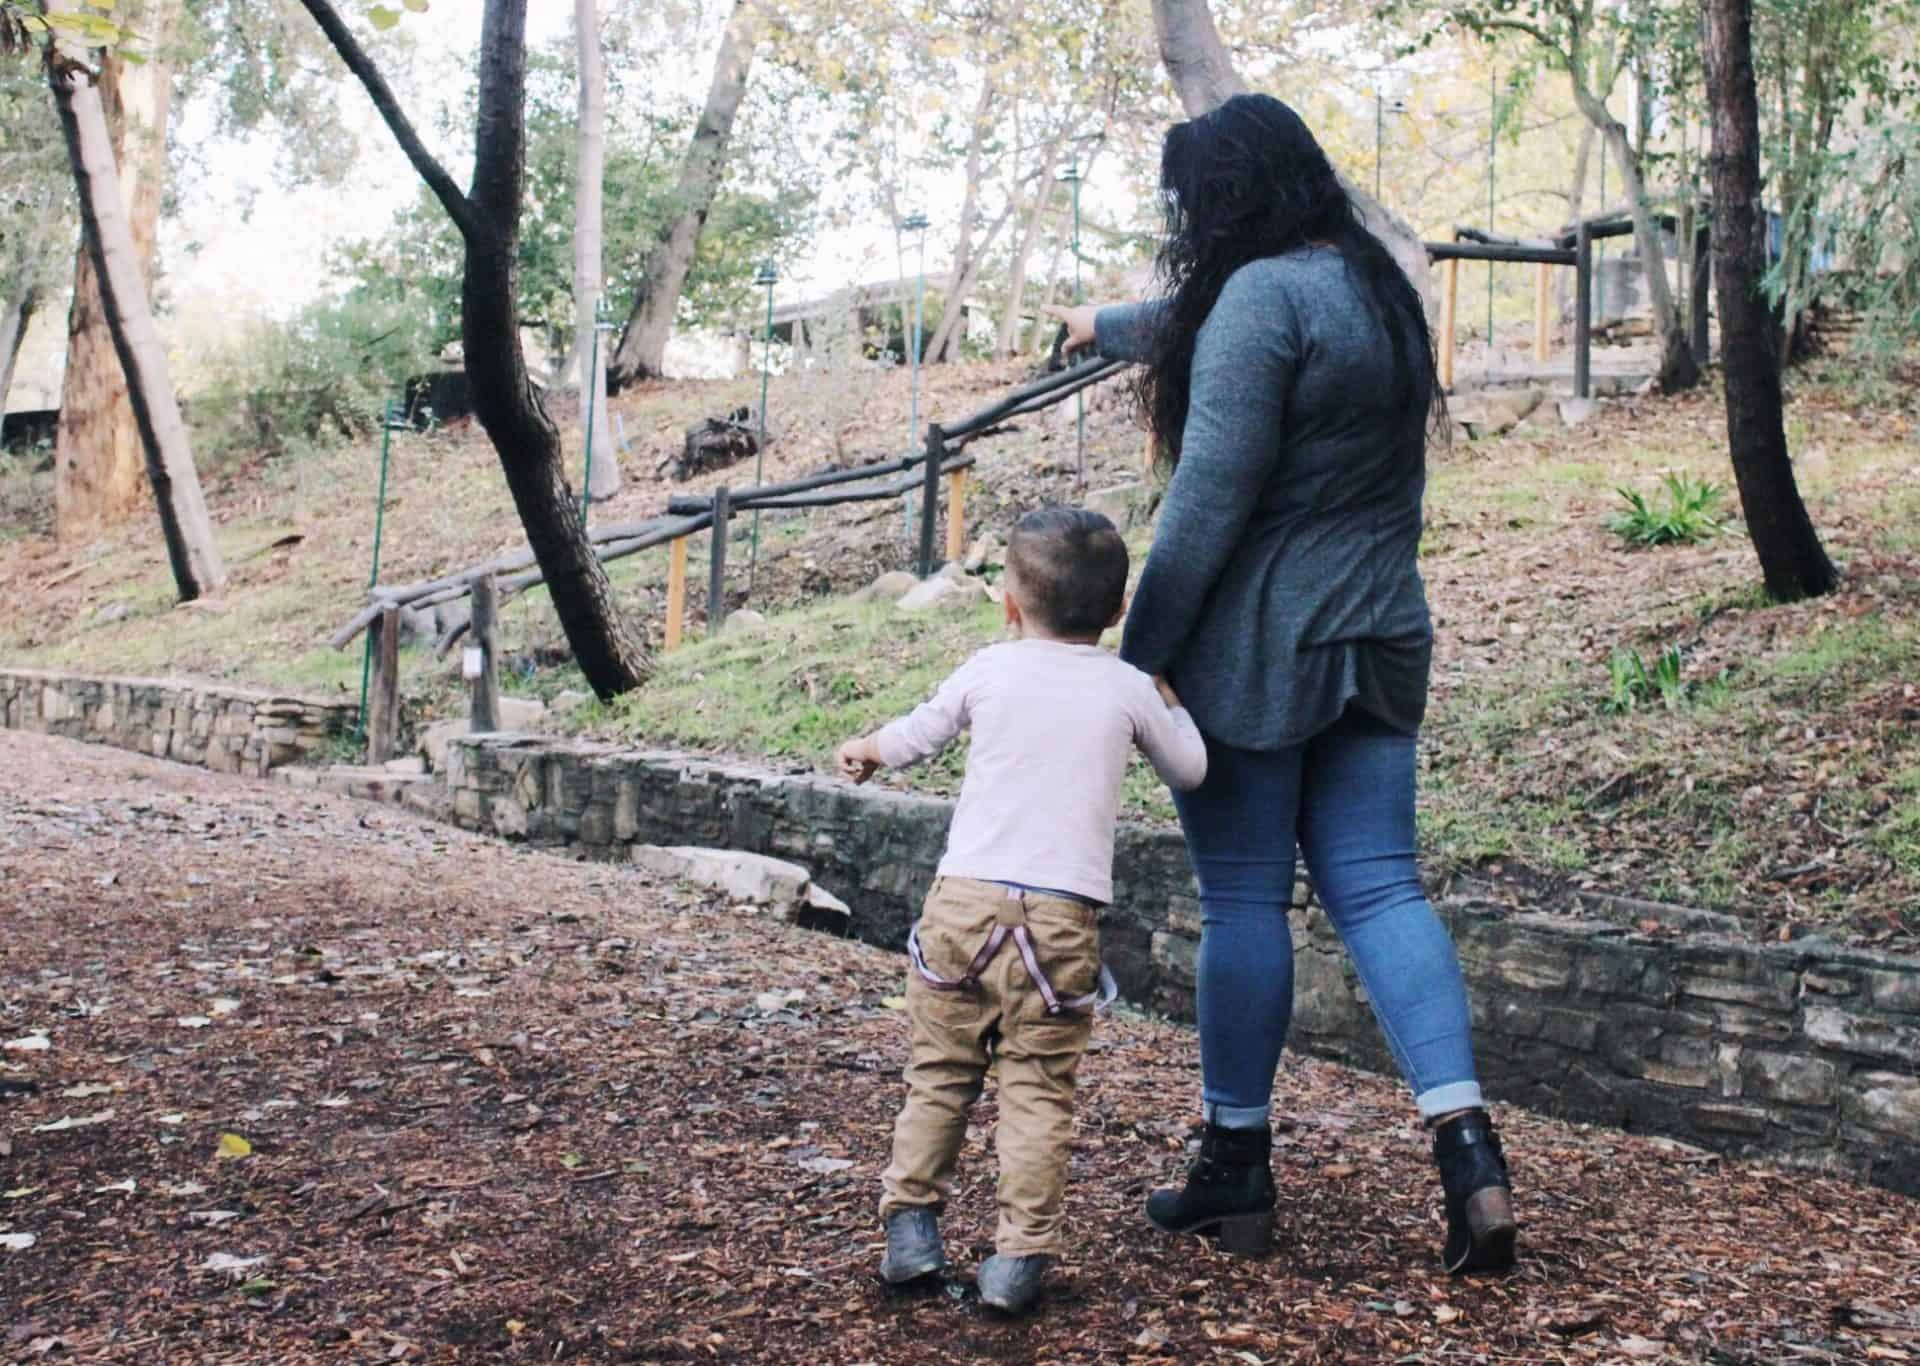 nanny, angeles mannies, los angeles nannies, nanny agency, autumn walk, nanny and child, lady and child, professional childcare